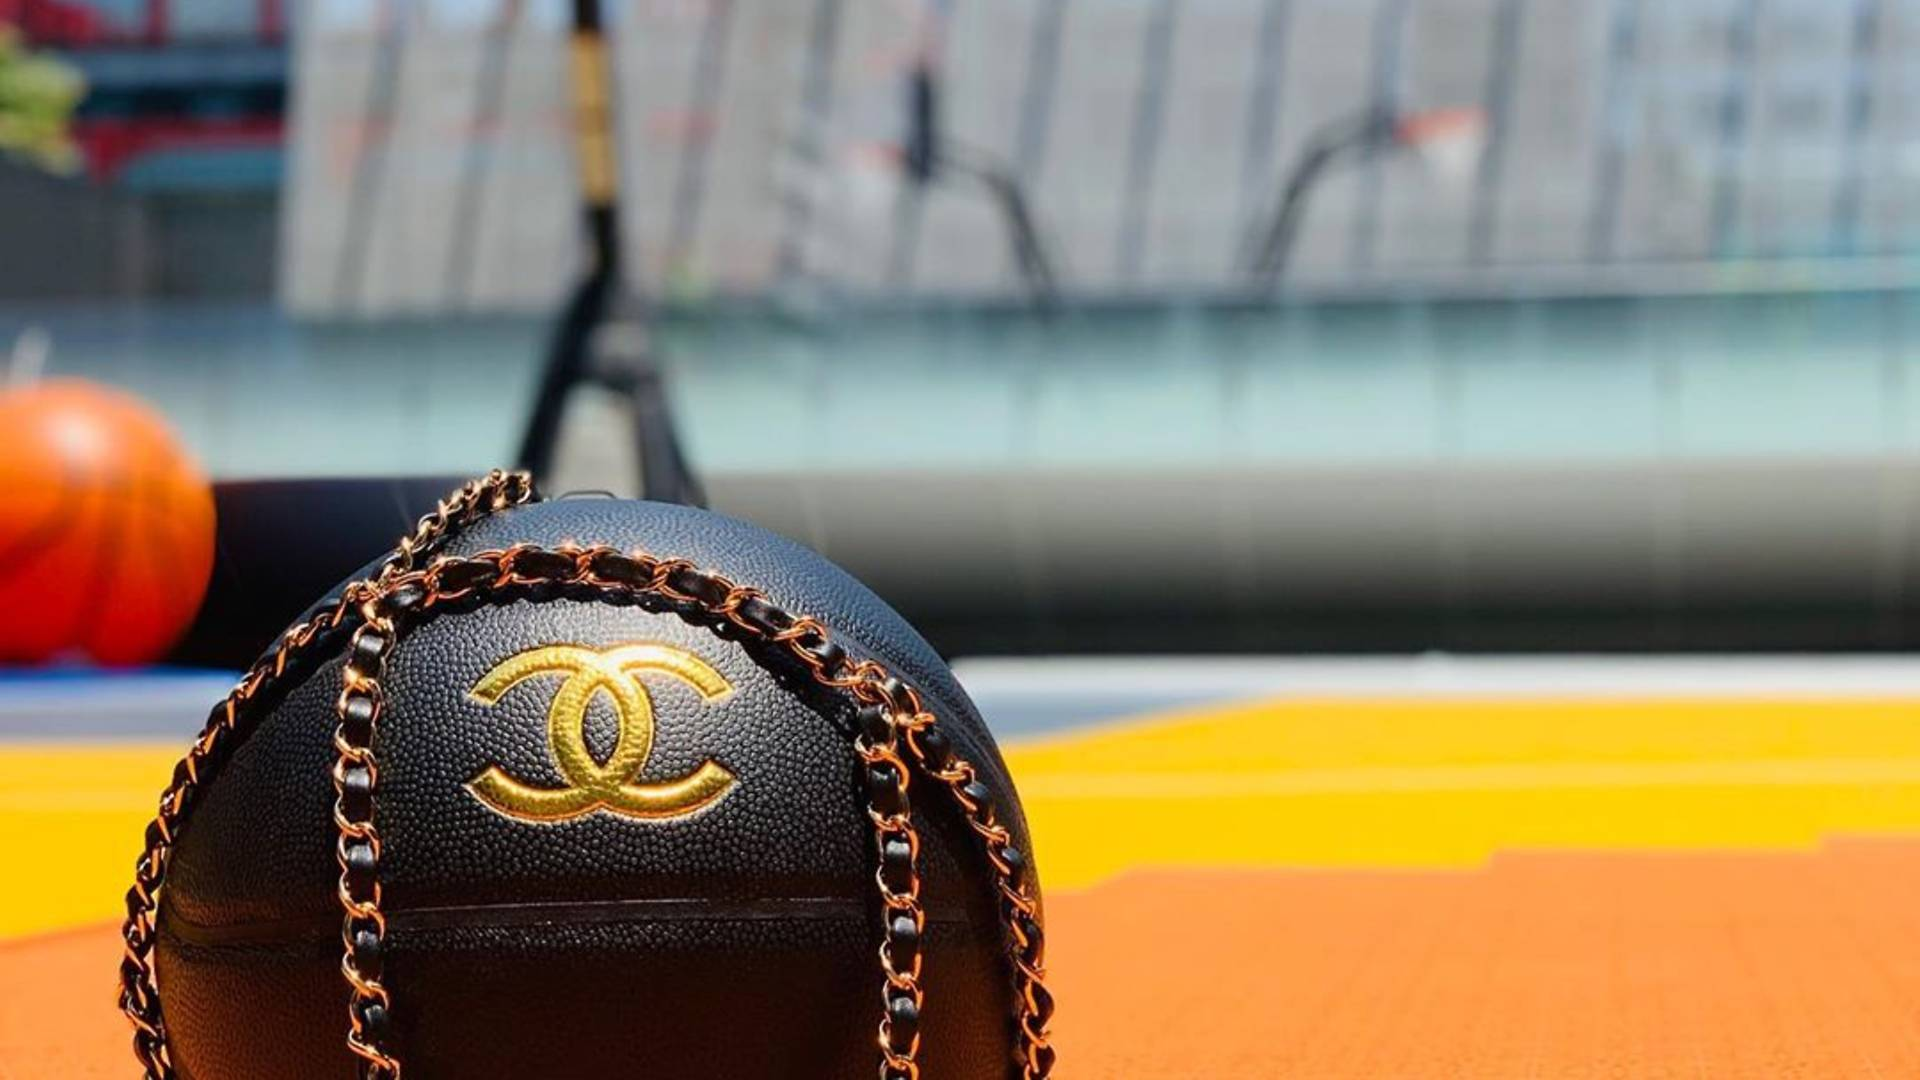 jay chou chanel basketball – Hermes, Louis Vuitton - Luxurious Sports Items From Famous Brands